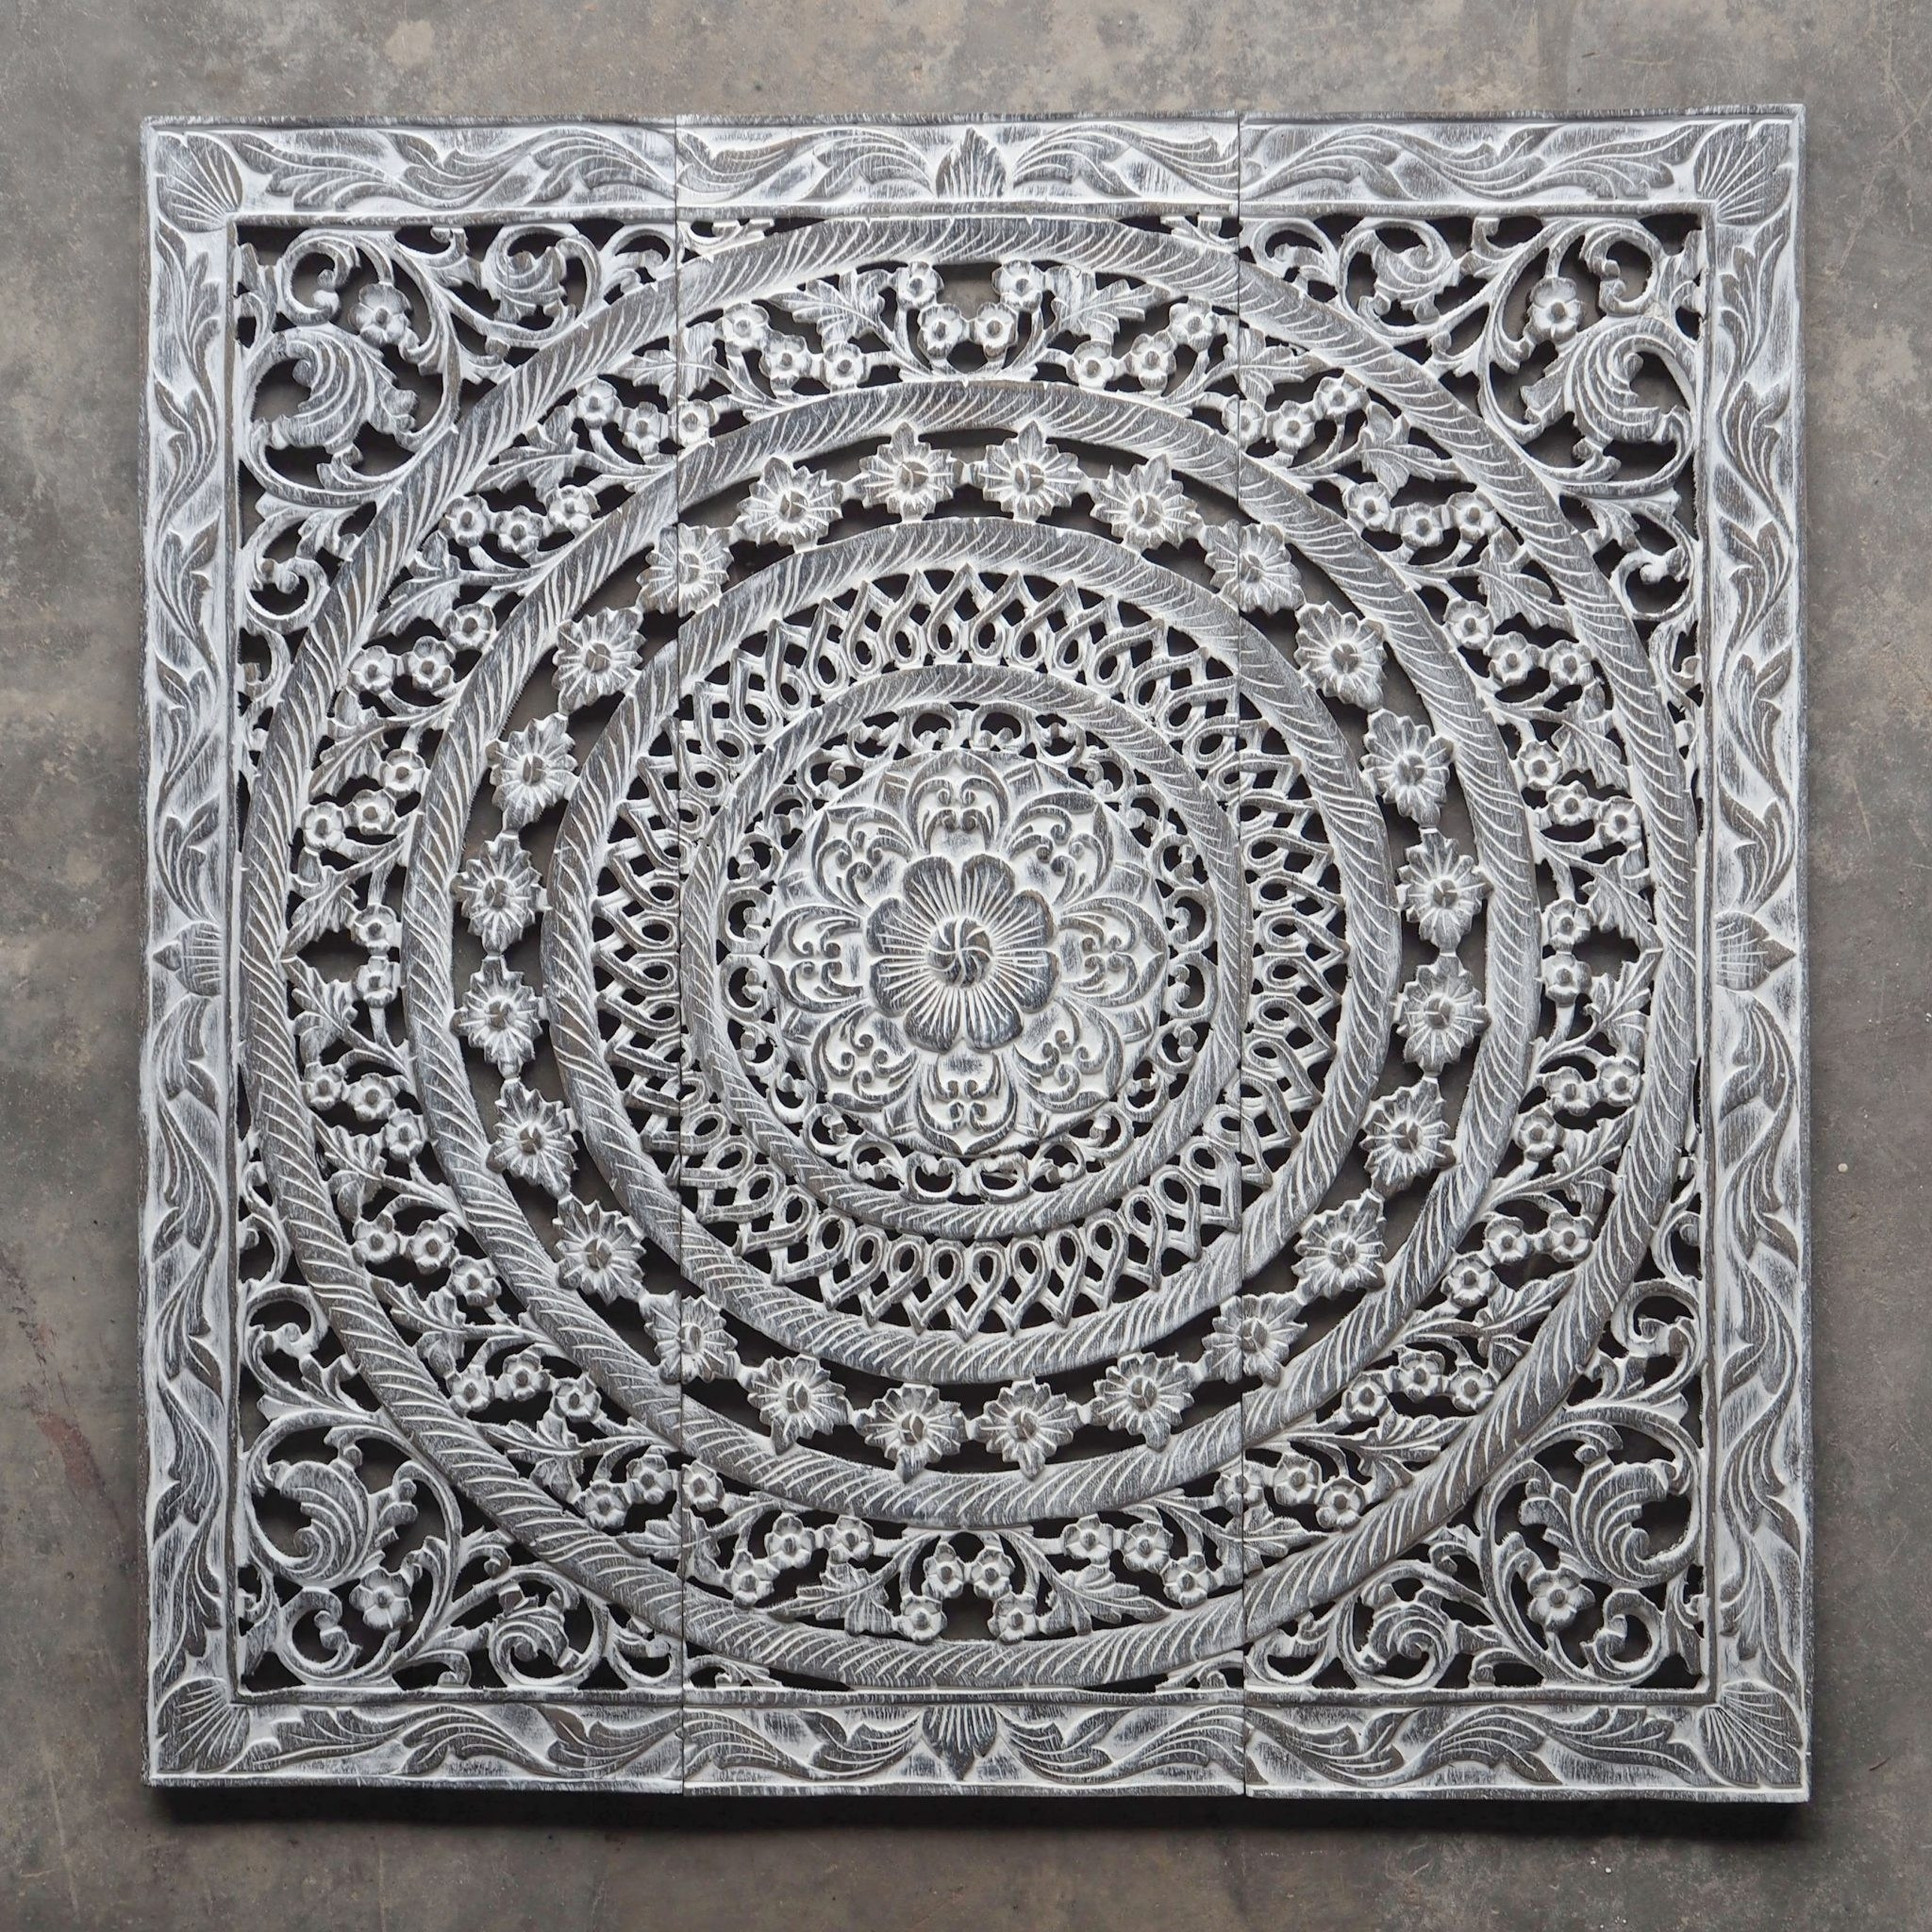 Compelling Carved Wooden Wall Decor Moroccan Wood Carving Wall In Recent Wood Carved Wall Art (View 9 of 20)